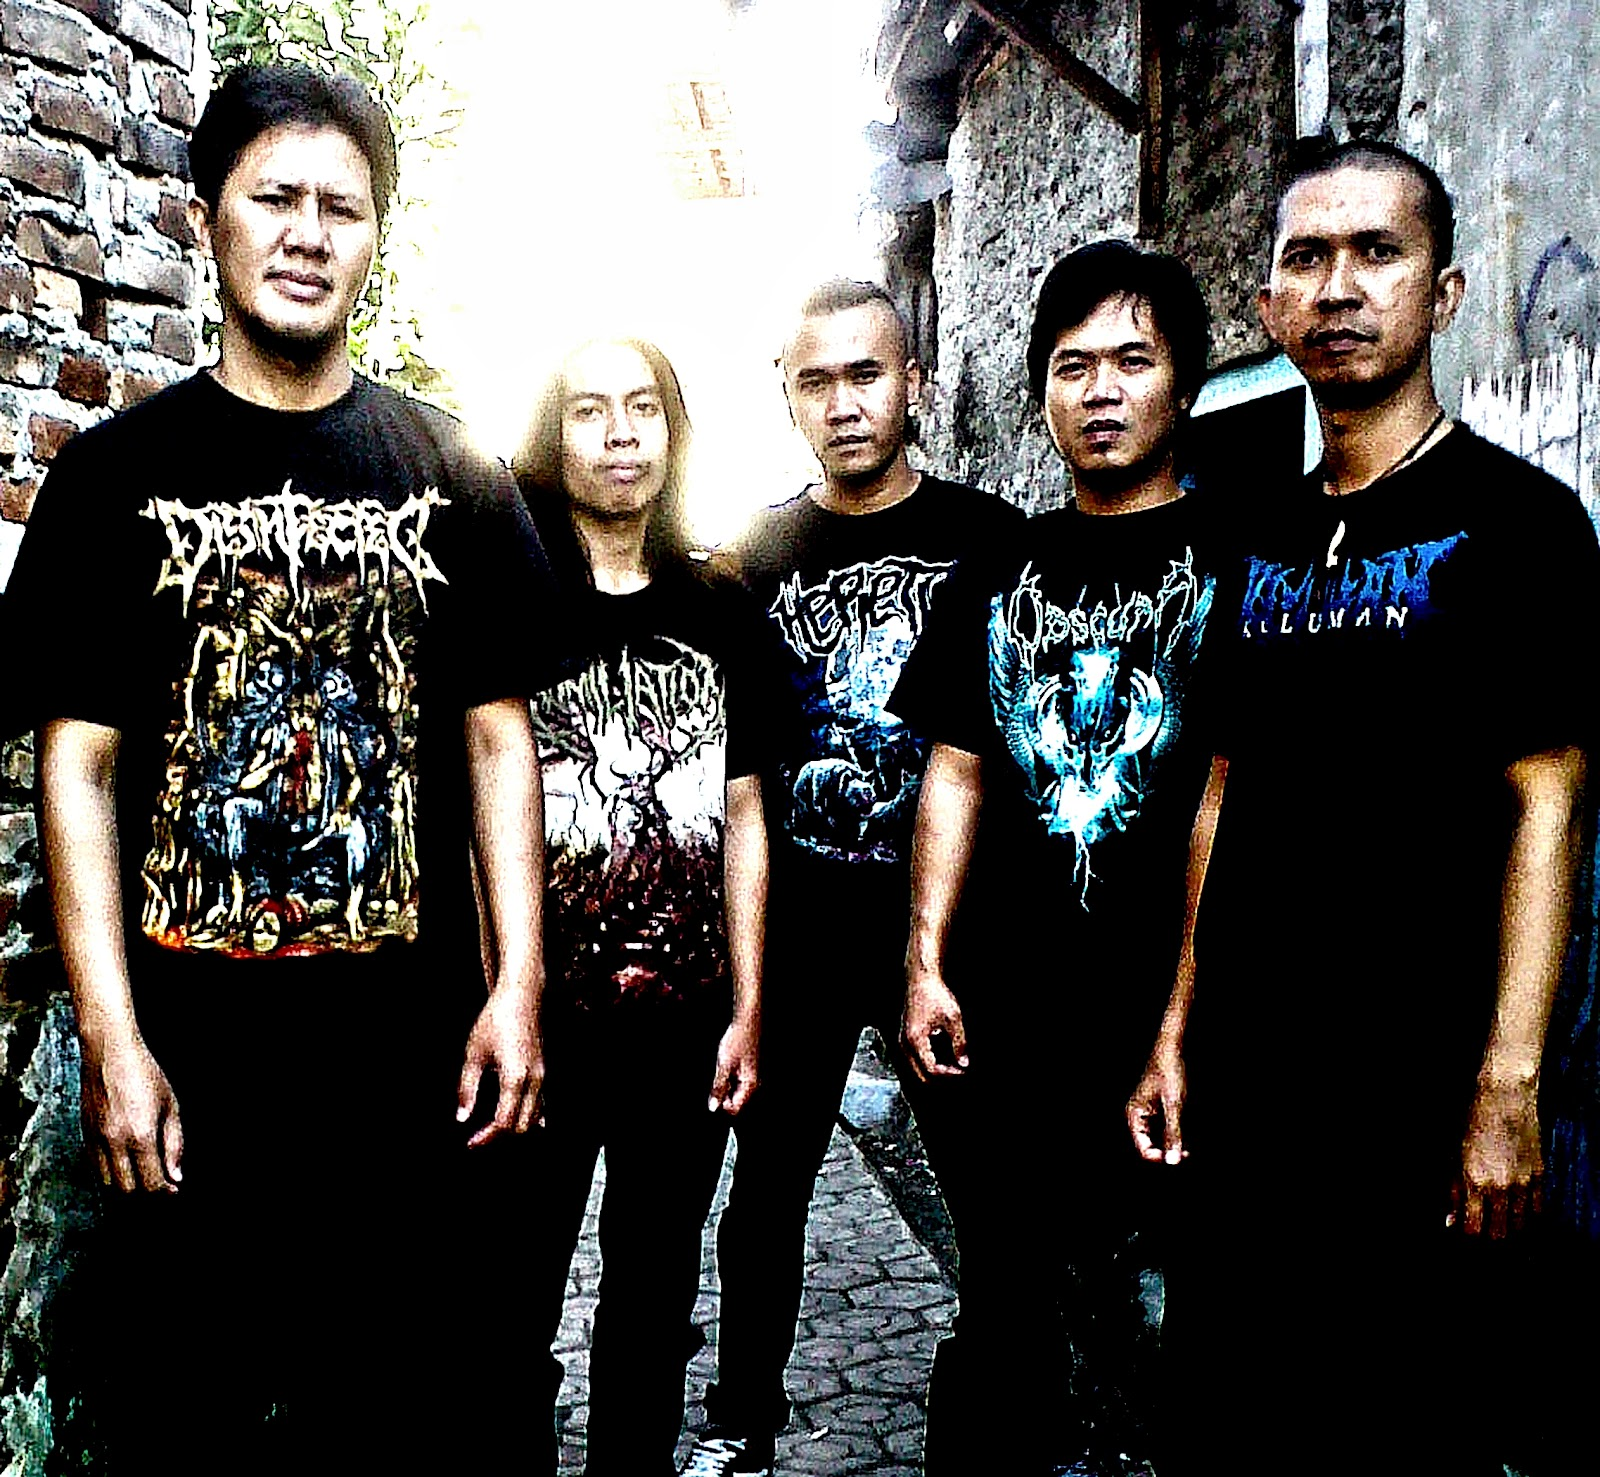 Busuk Webzine Old Site Interview Exclusive With Disinfected At Tendencies Tshirt Future Punk Hitam L Adyth 1997 November 2th First Line Up Is Me Guitar Sigit Bass Ameng Vocal Abah Andris Burgerkill Drum And Upick Melted